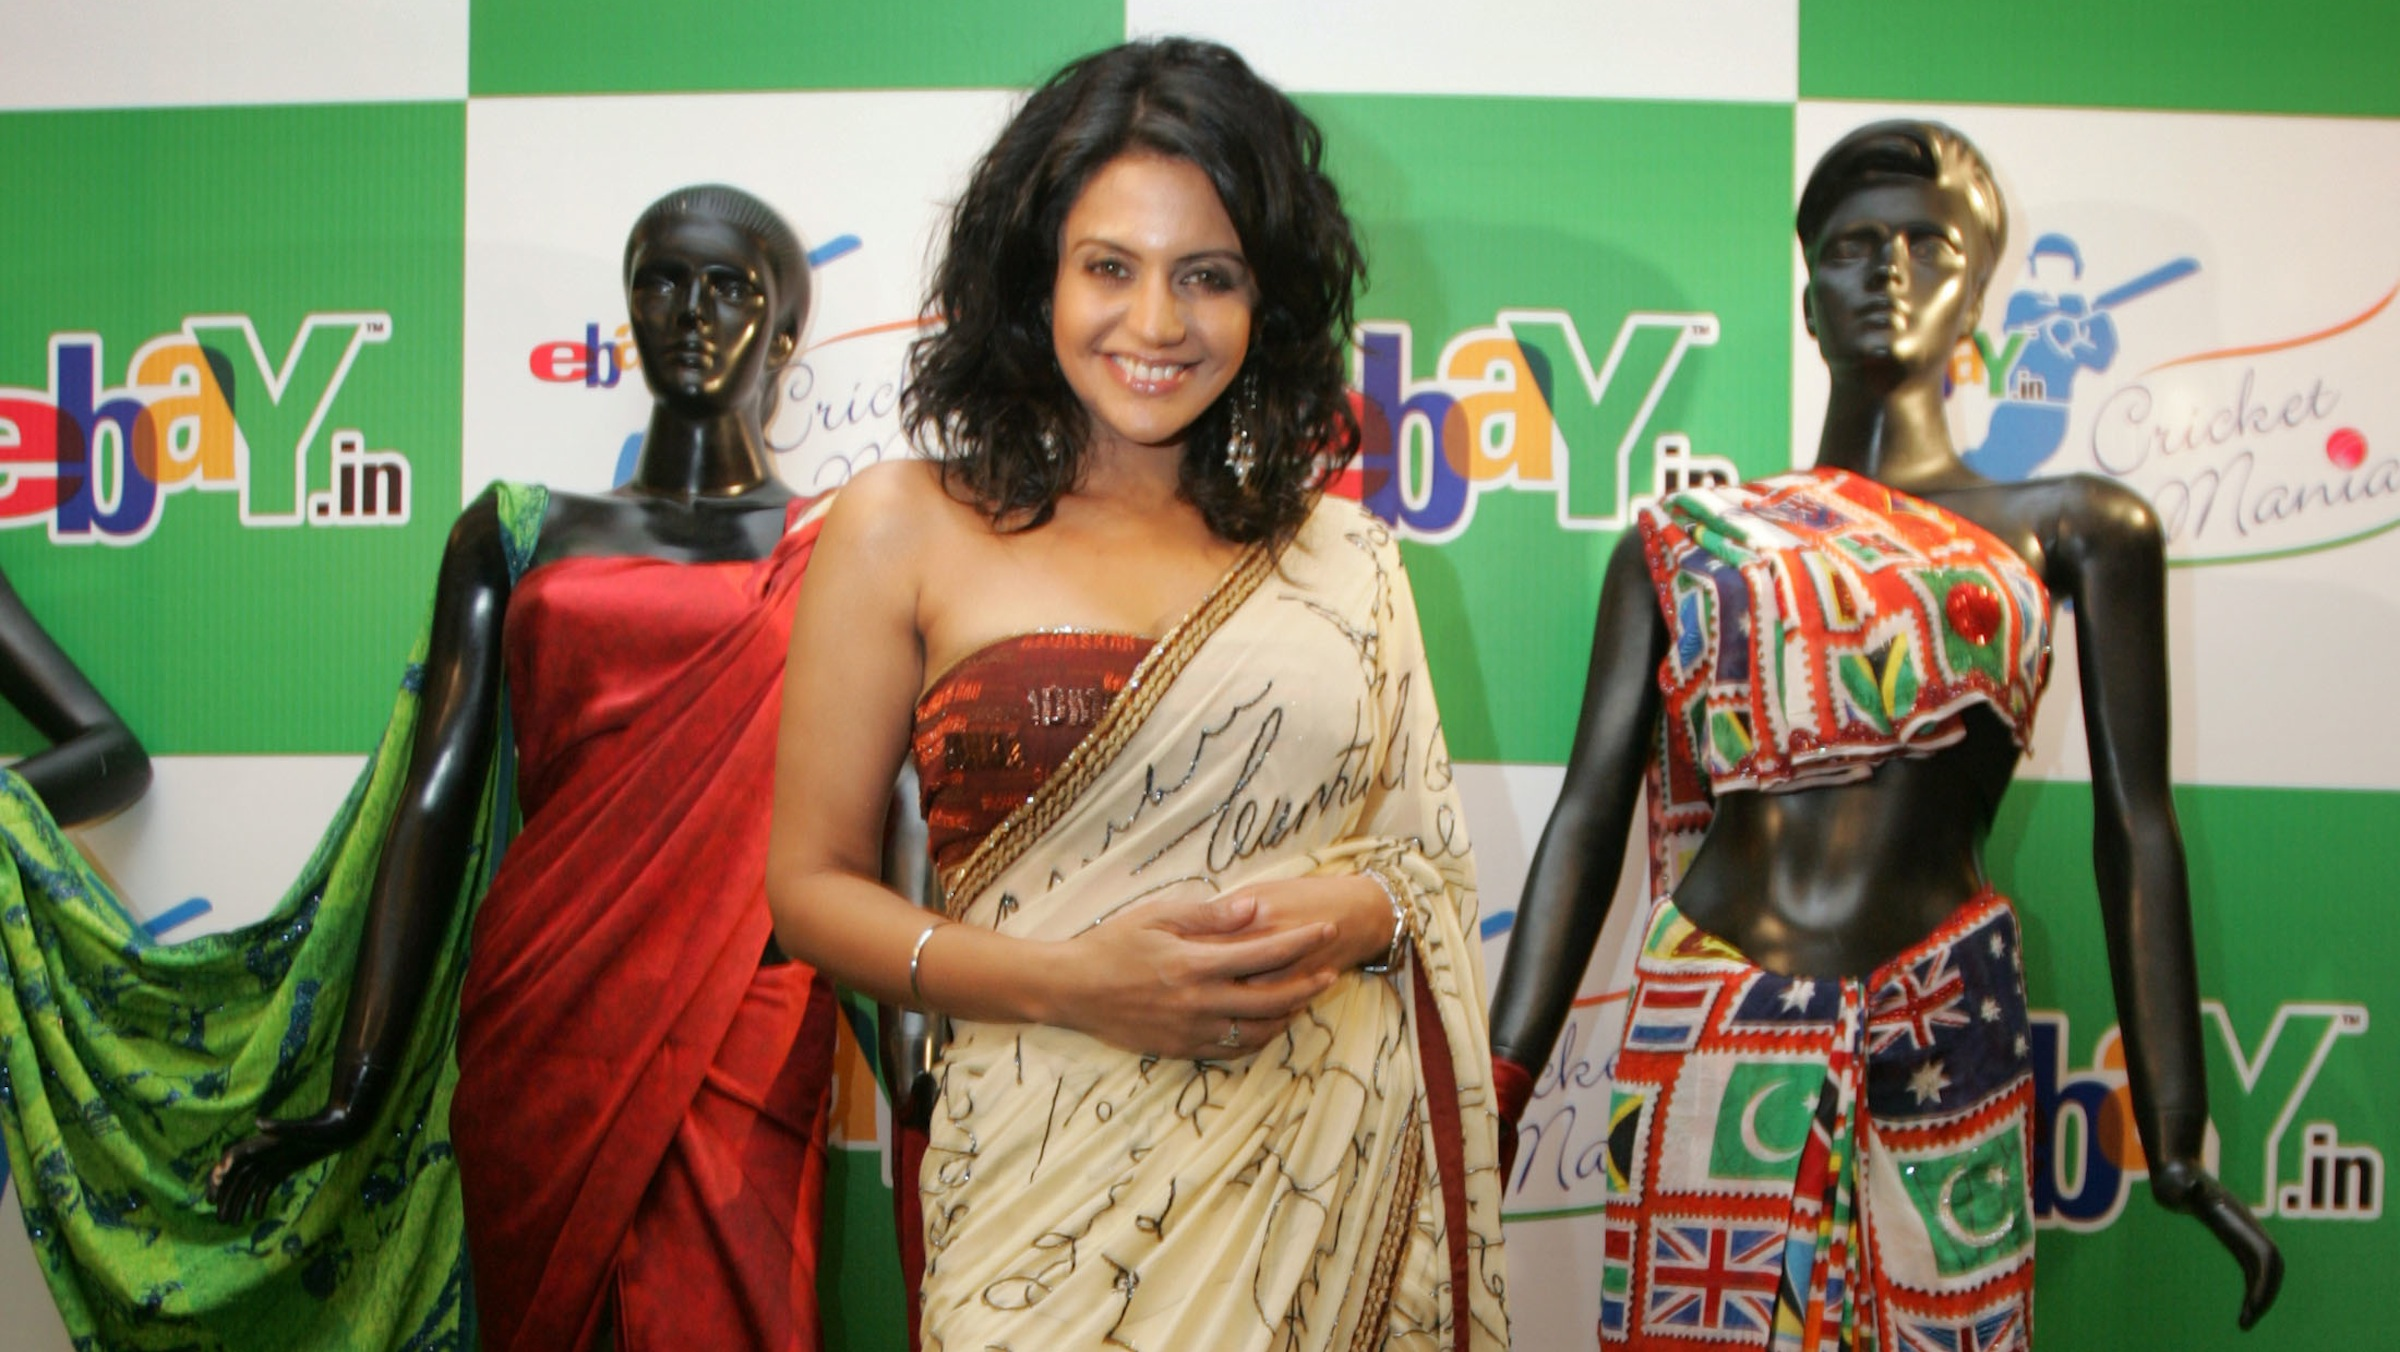 Indian cricket anchor Mandira Bedi poses with saris on the theme of the World Cup 2007 in New Delhi, India, Feb. 23, 2007. E-Bay India plans to auction collectibles as part of E-Bay Cricket Mania, ahead of next month's Cricket World Cup 2007. (AP Photo/Gurinder Osan)